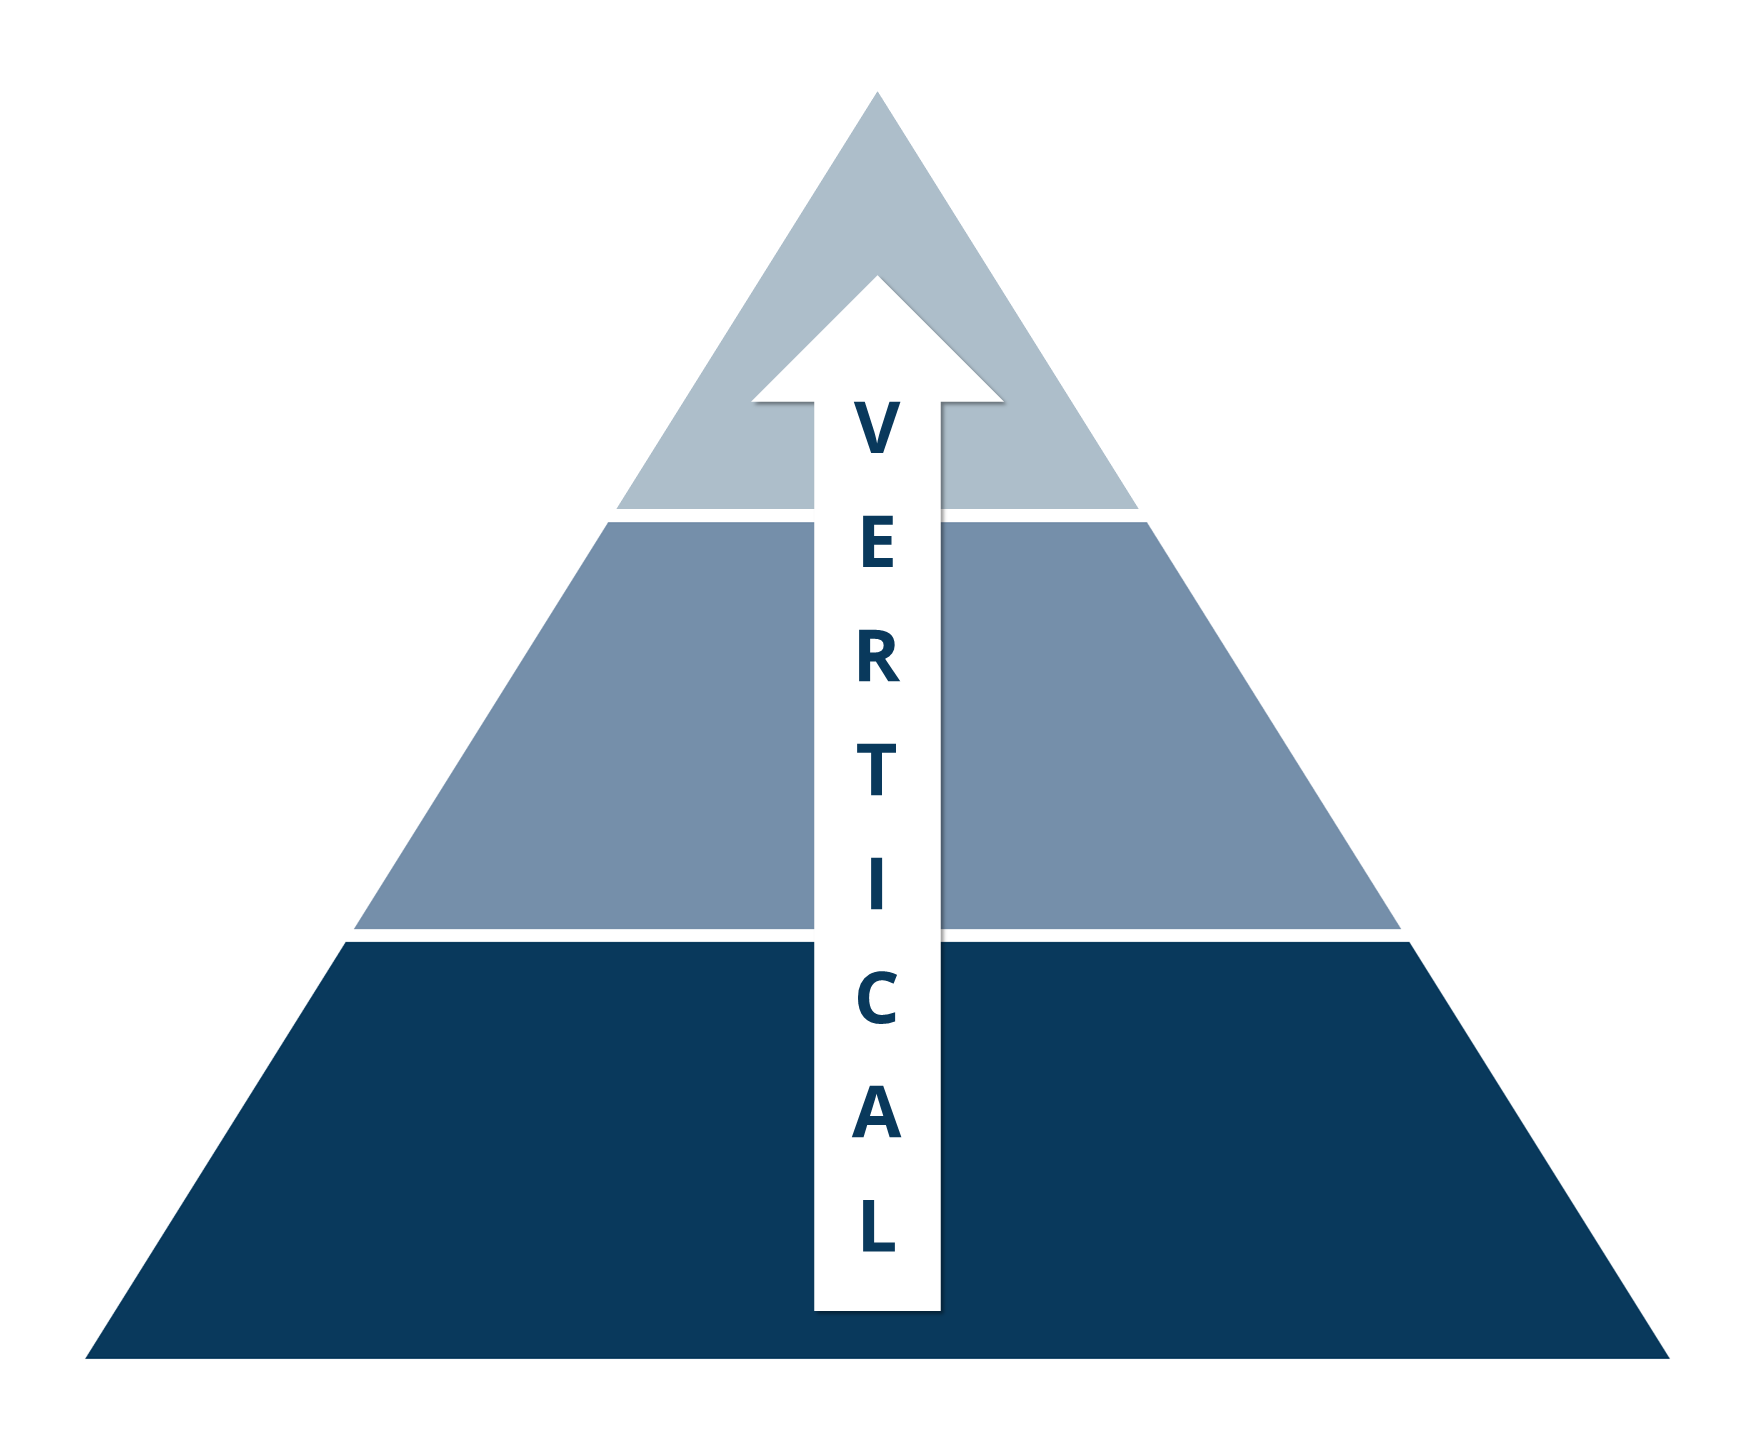 The vertical hire